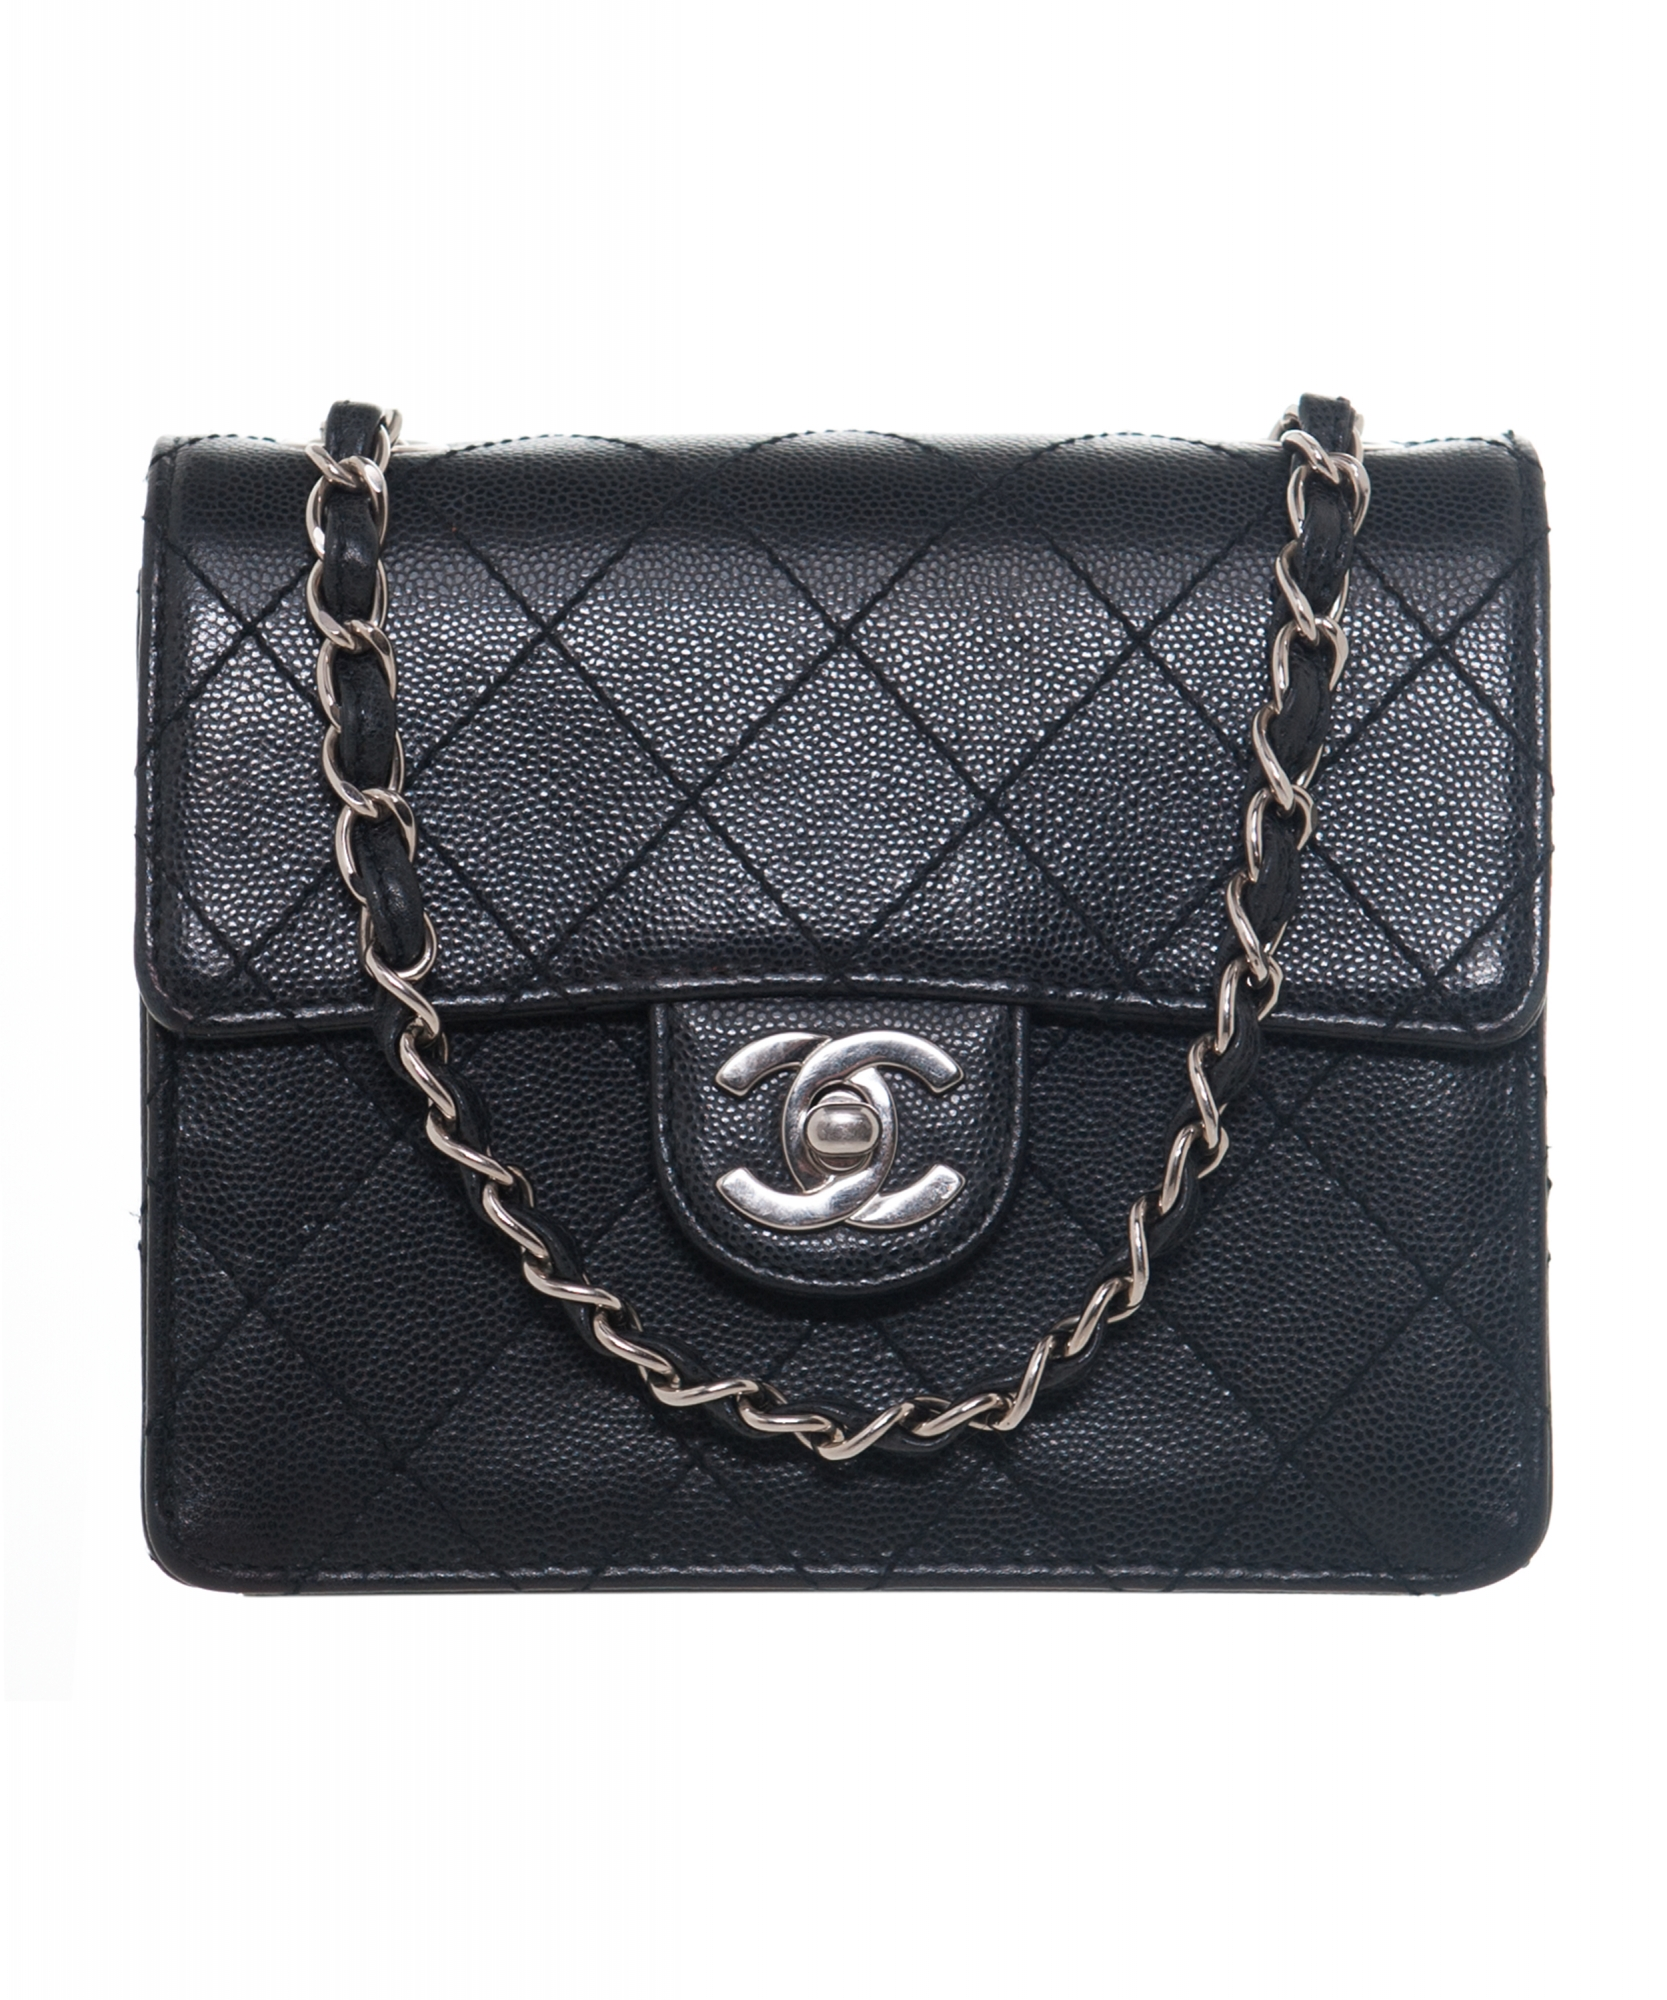 29acffdca275 Chanel Vintage Black Caviar Quilted Mini Flap Bag | La Doyenne